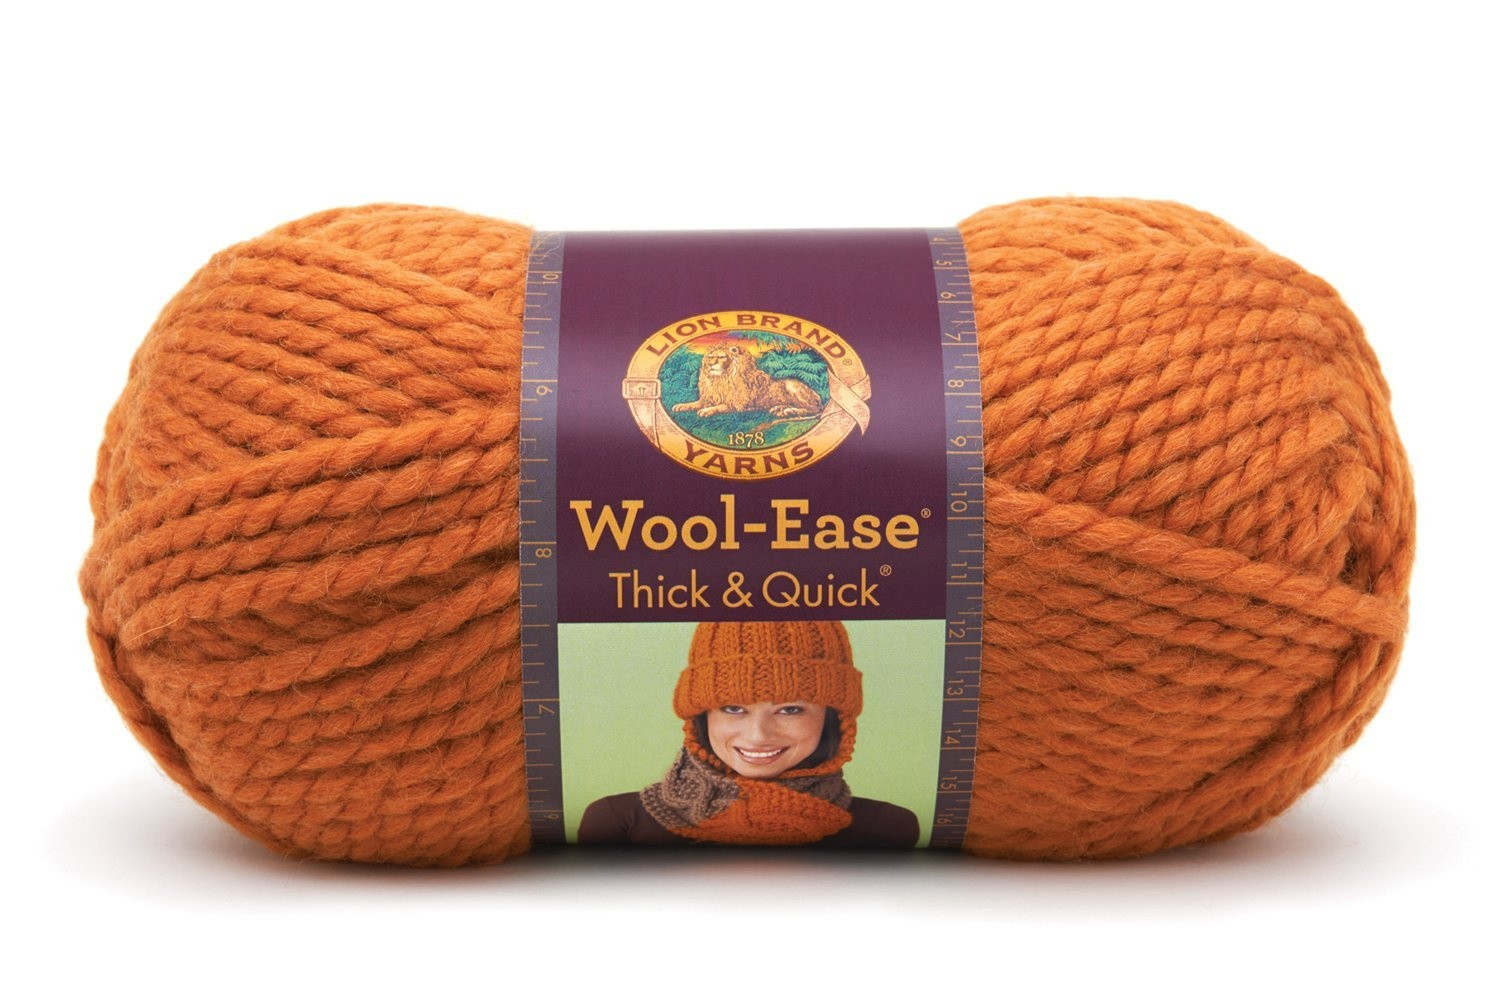 Lion Brand Wool Ease Beautiful Lion Brand Yarn 640 136f Wool Ease Thick and Quick Yarn Of Lion Brand Wool Ease New Lion Brand Yarn Wool Ease Yarn Best Price